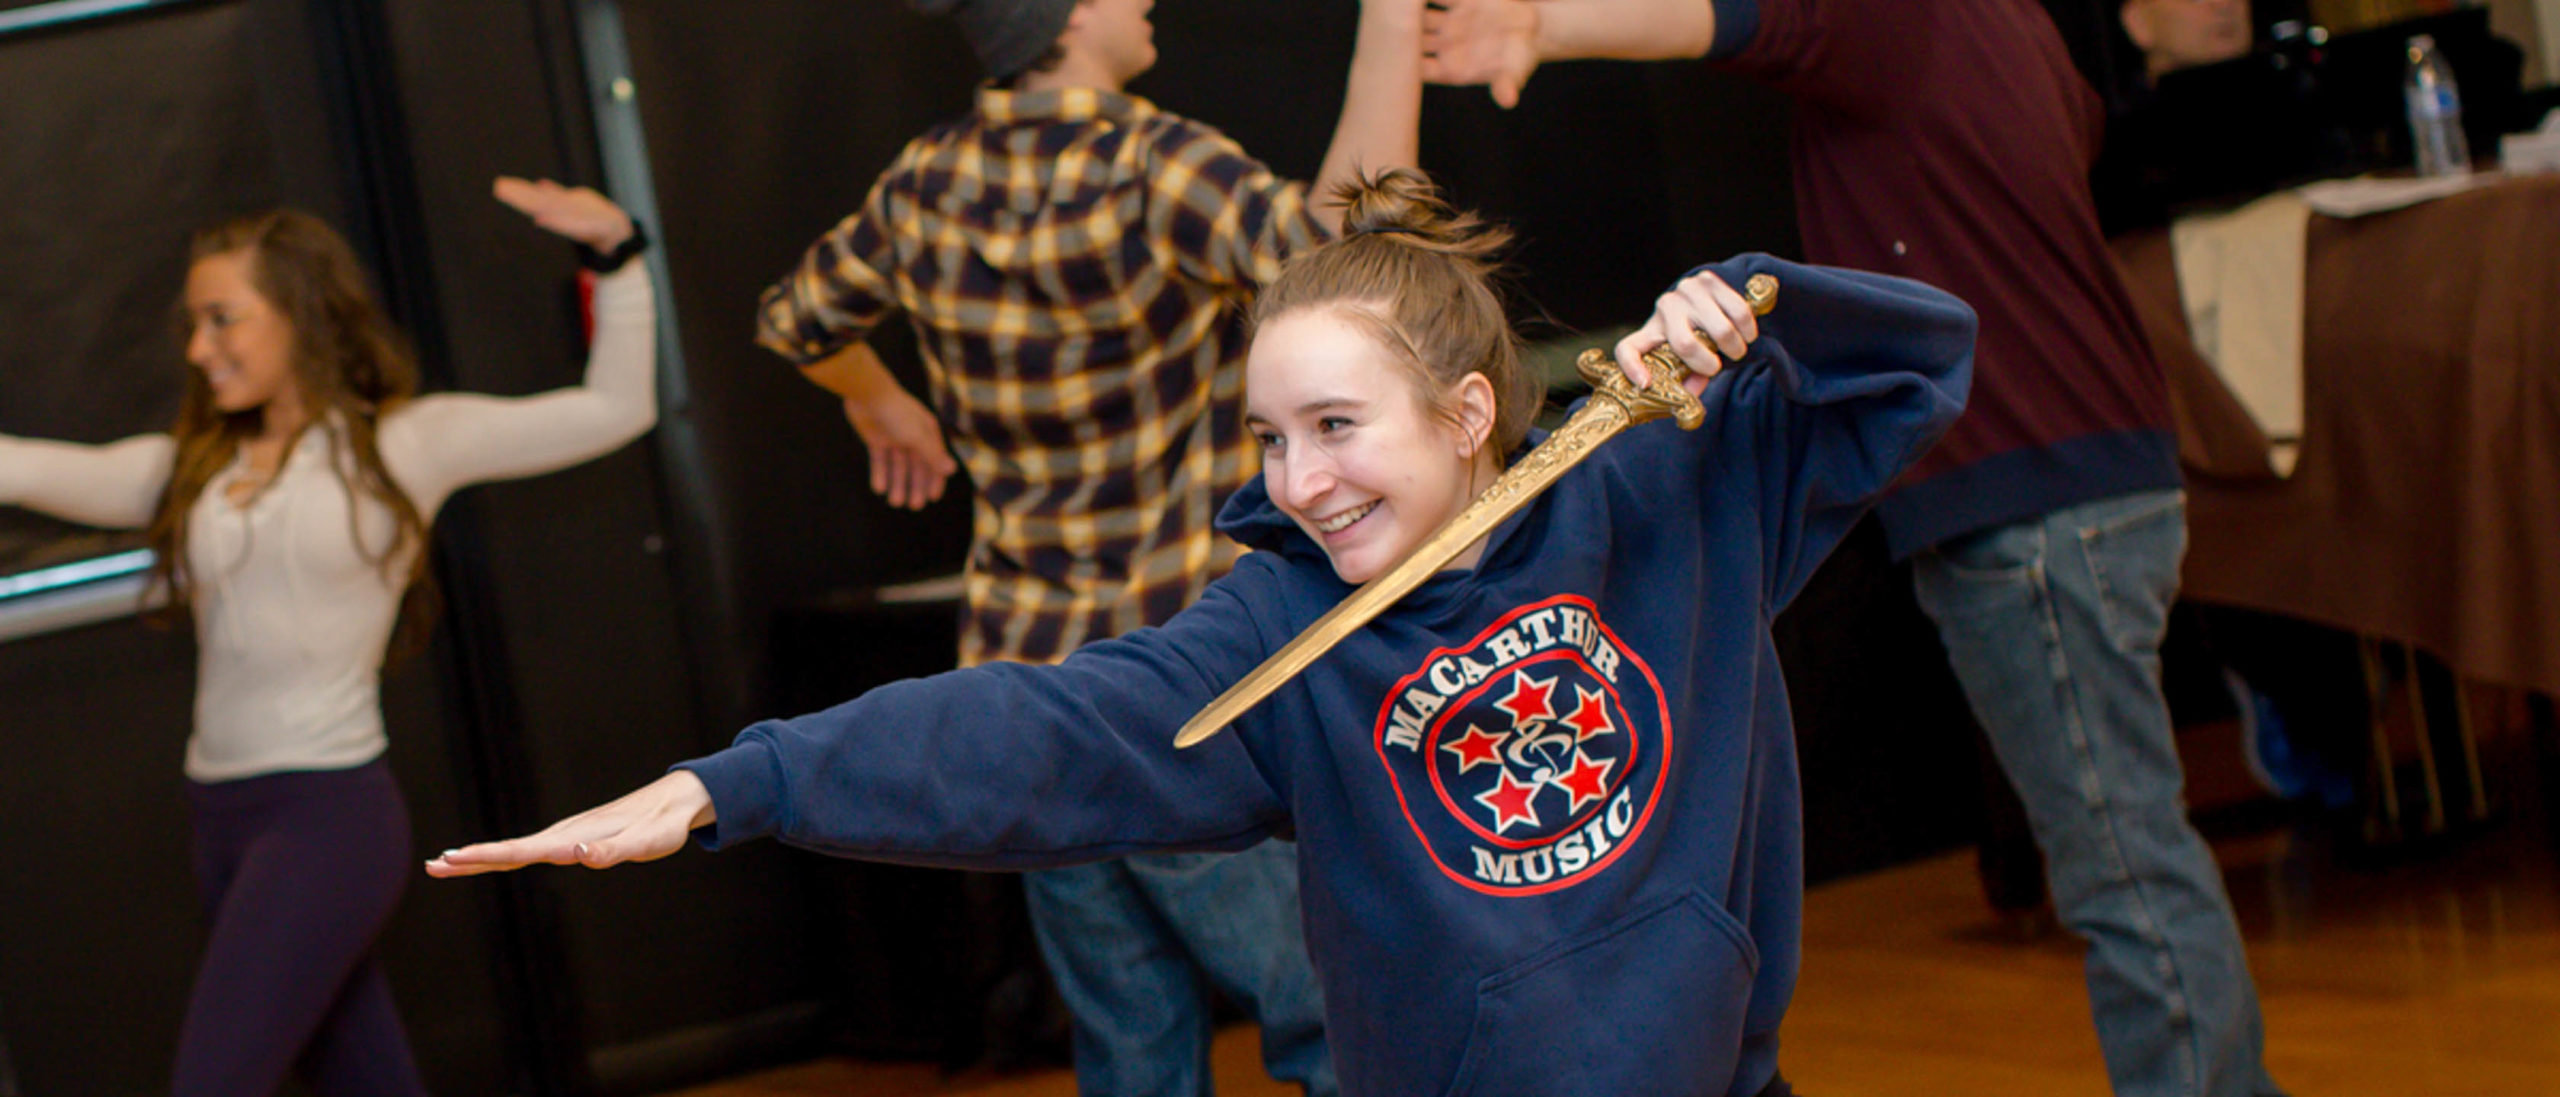 Students learning how to sword fight